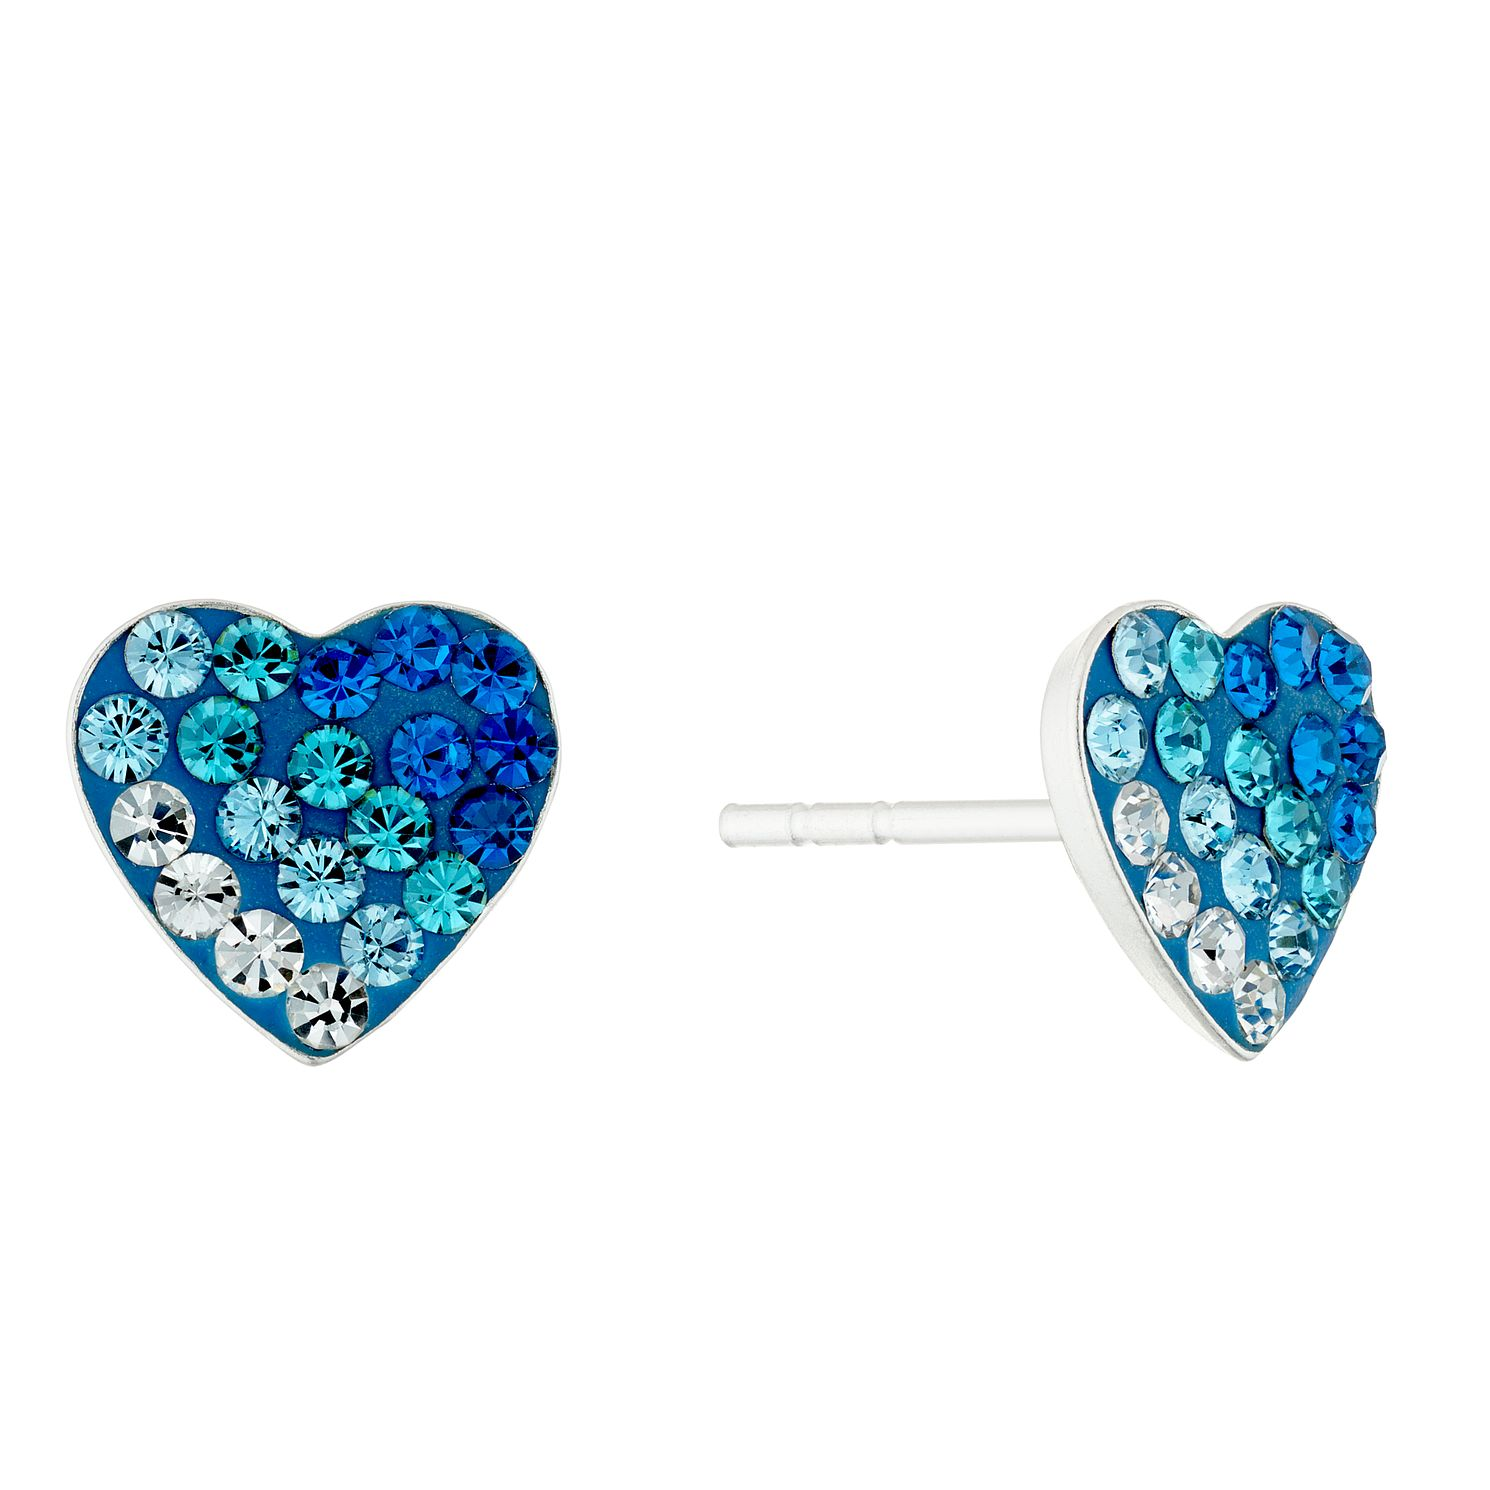 Silver & Enamel Blue Crystal Heart Stud Earrings - Product number 4448960